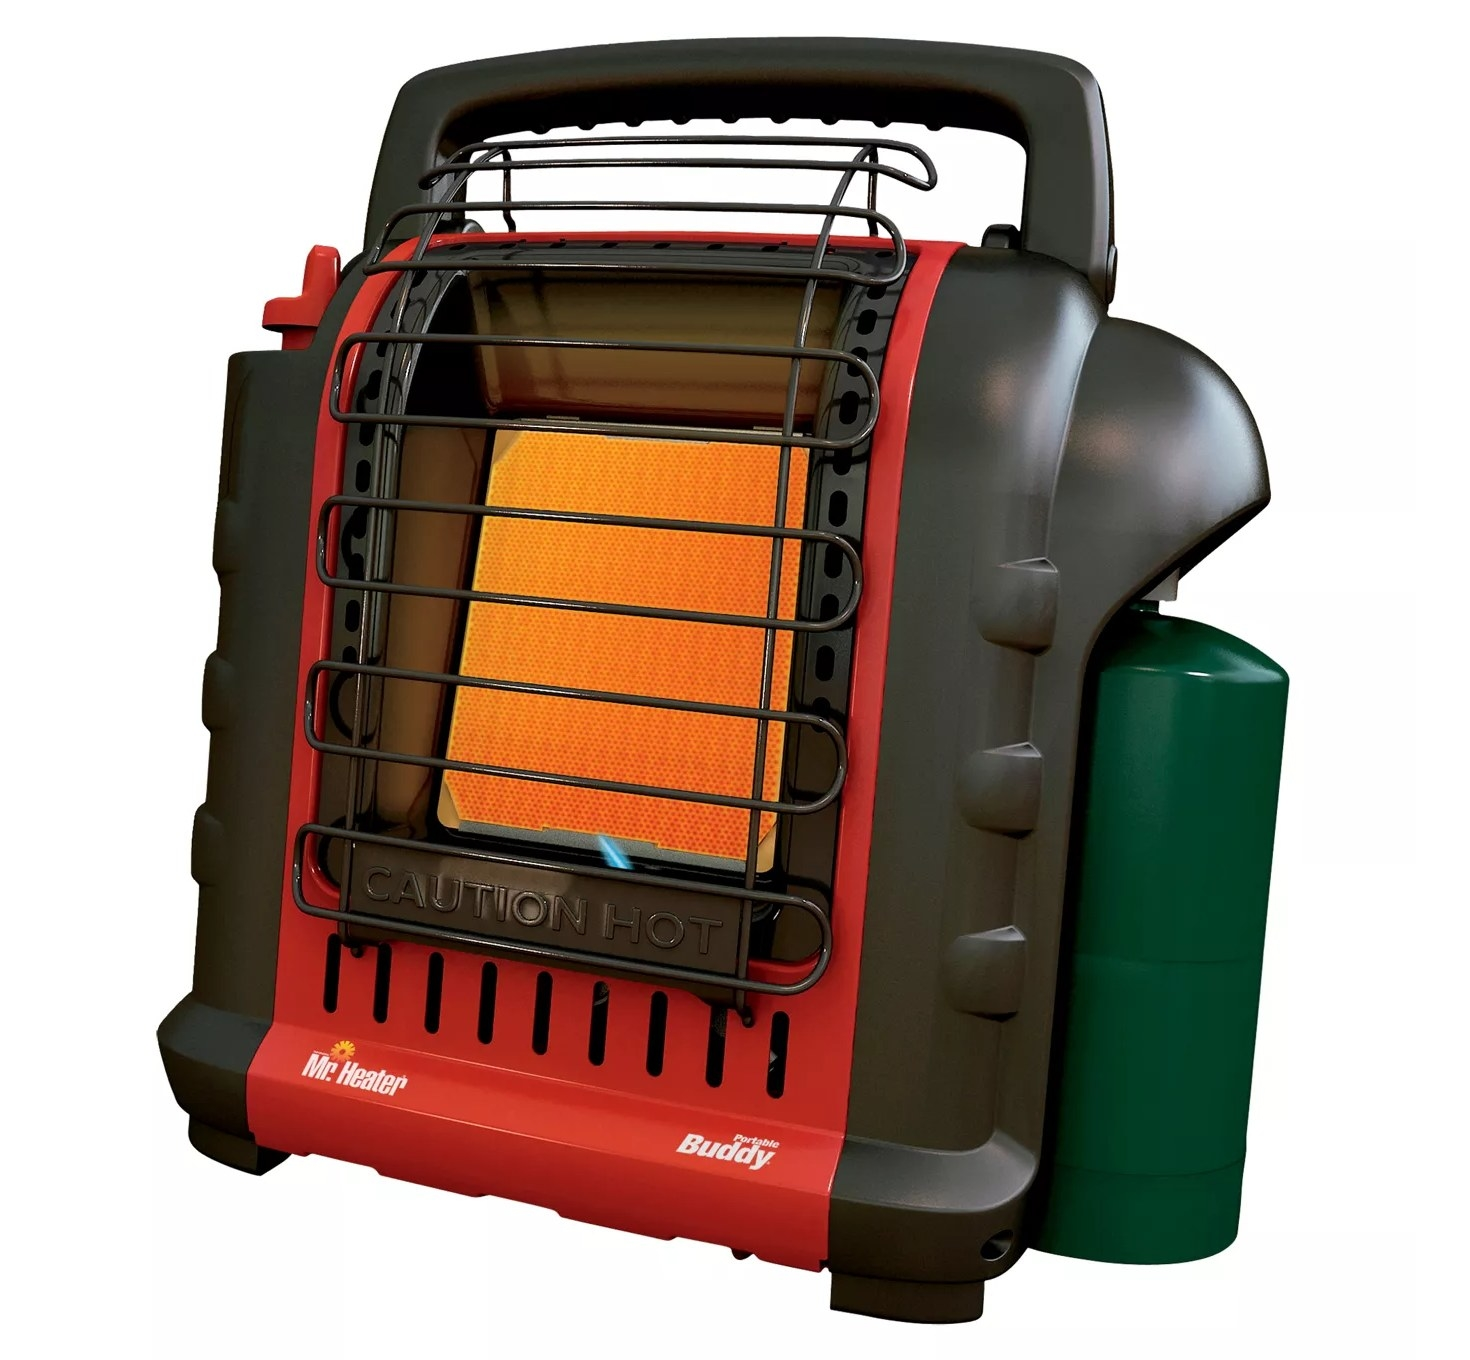 a red and black space heater